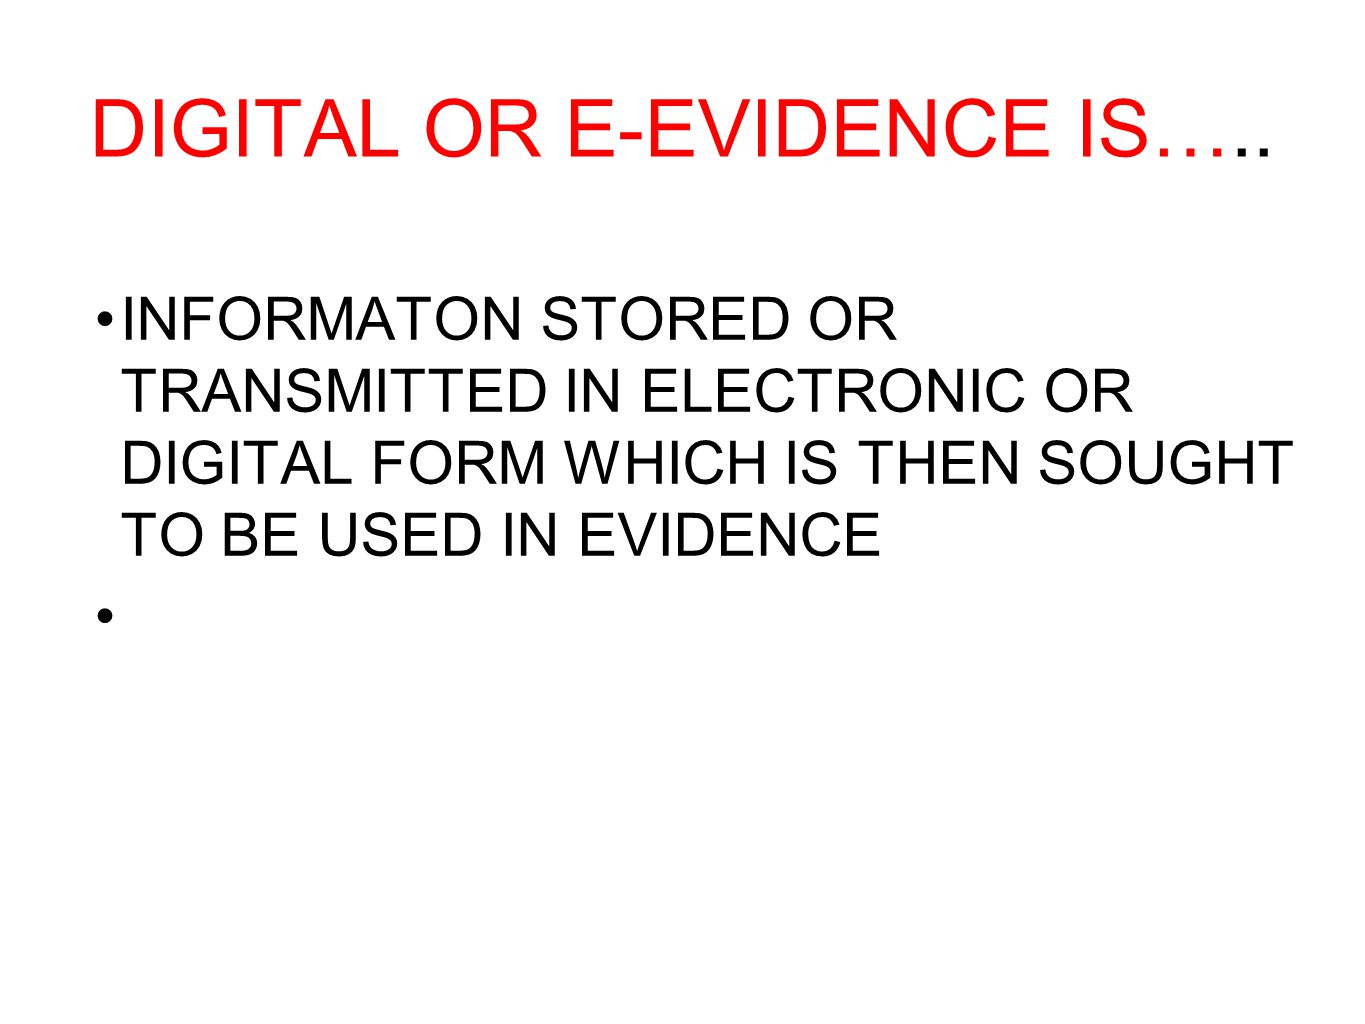 DIGITAL OR E-EVIDENCE IS….. INFORMATON STORED OR TRANSMITTED IN ELECTRONIC OR DIGITAL FORM WHICH IS THEN SOUGHT TO BE USED IN EVIDENCE